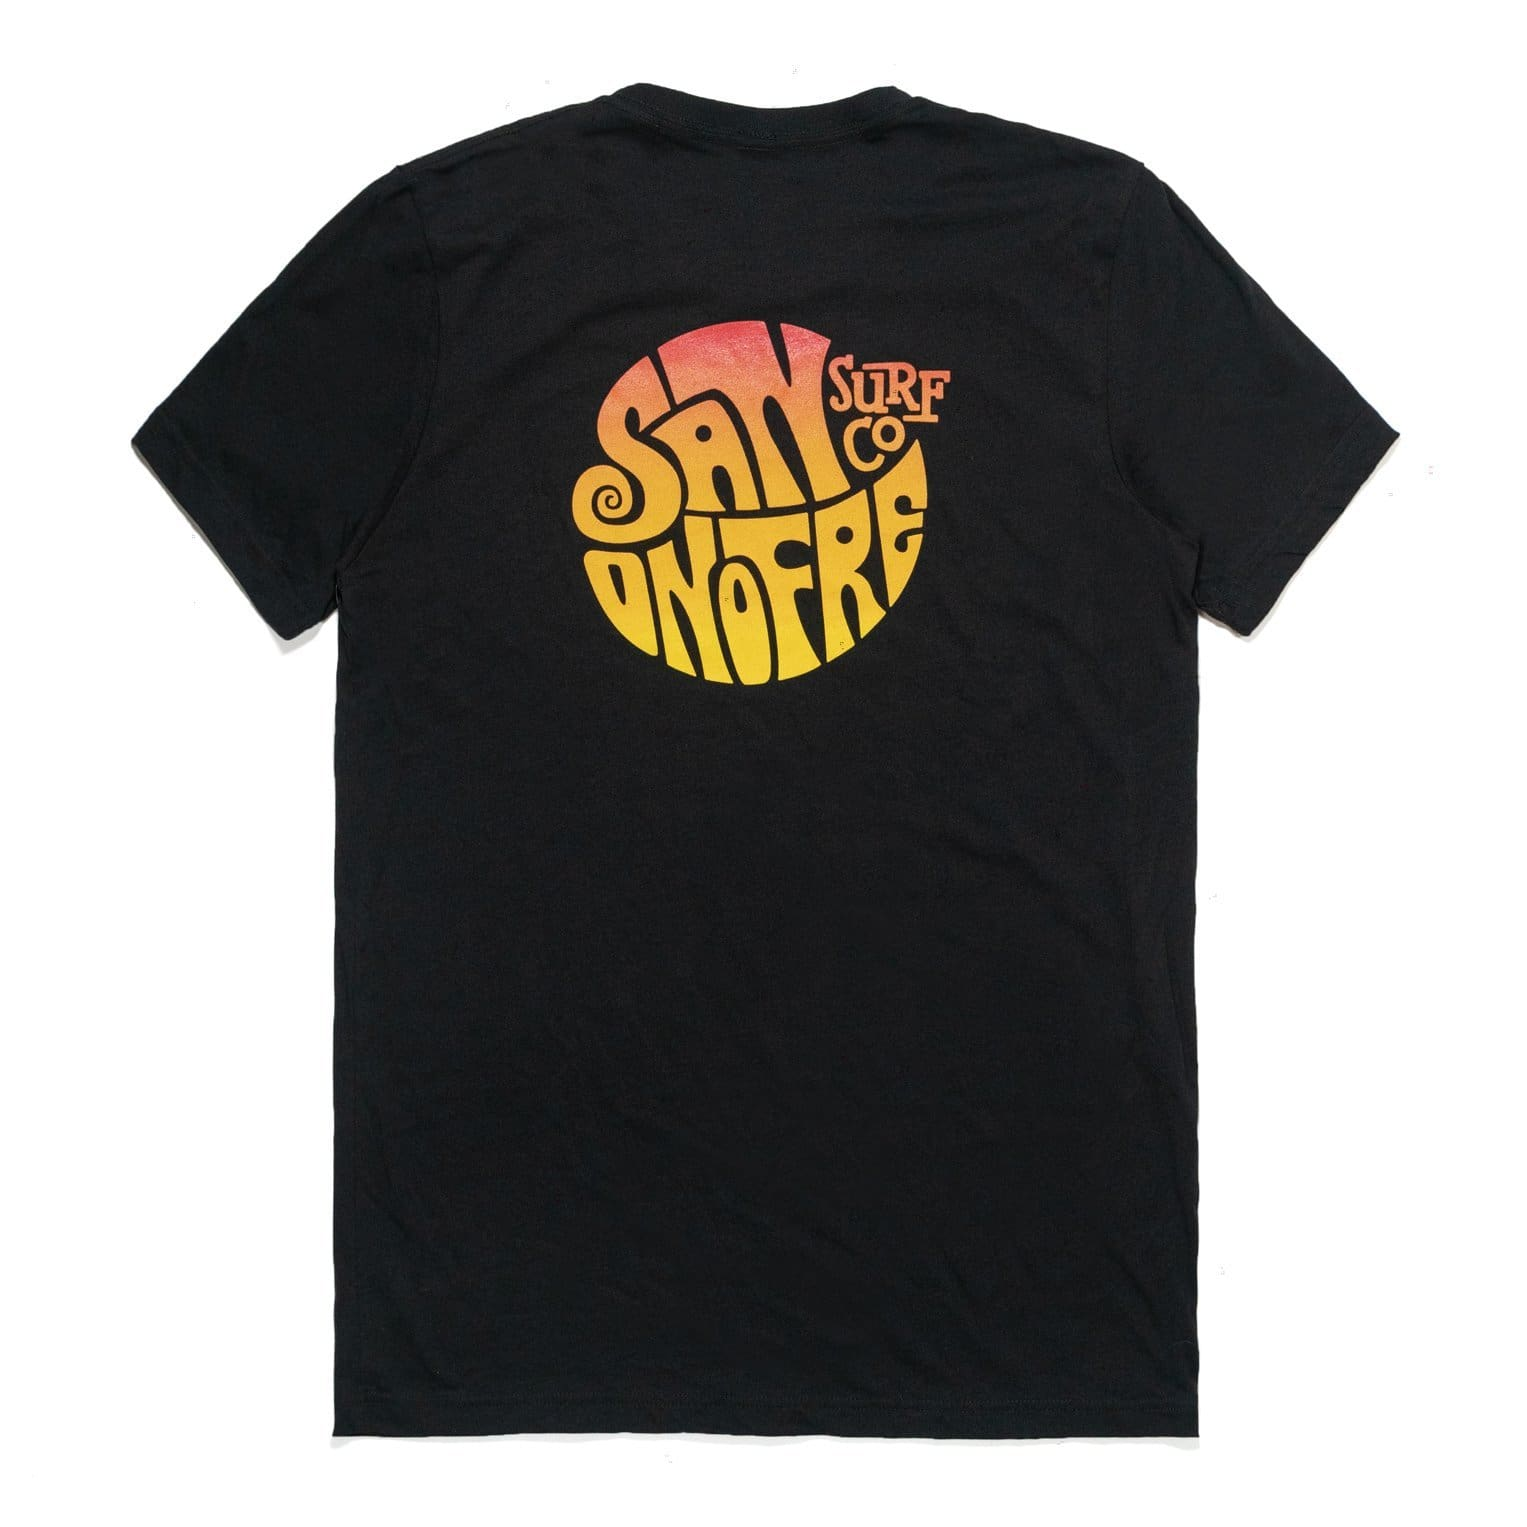 San Onofre Surf Co Knot T Shirt Black - clothing